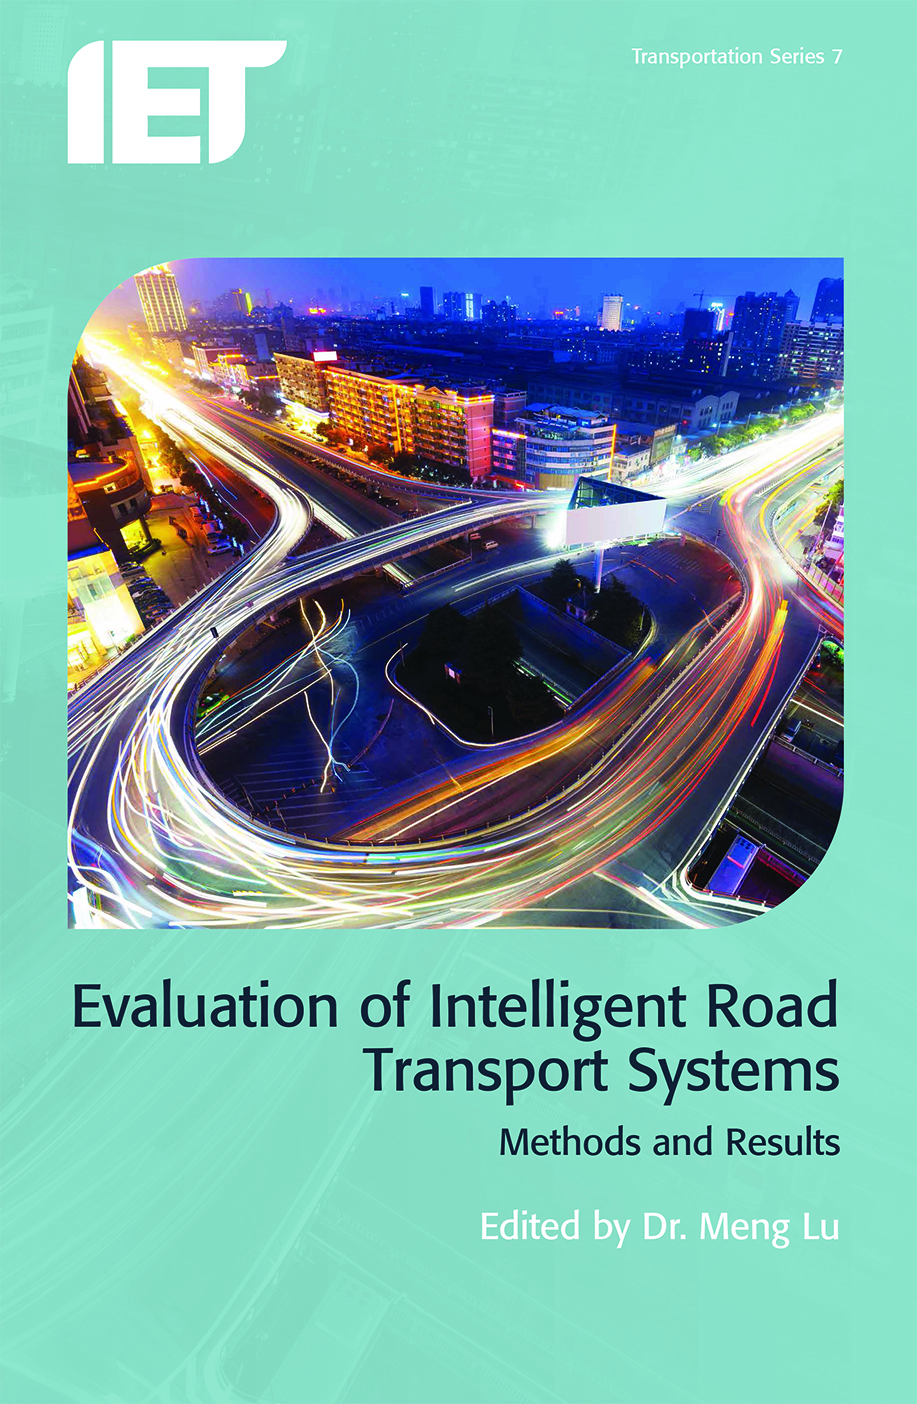 Evaluation of Intelligent Road Transport Systems, Methods and results